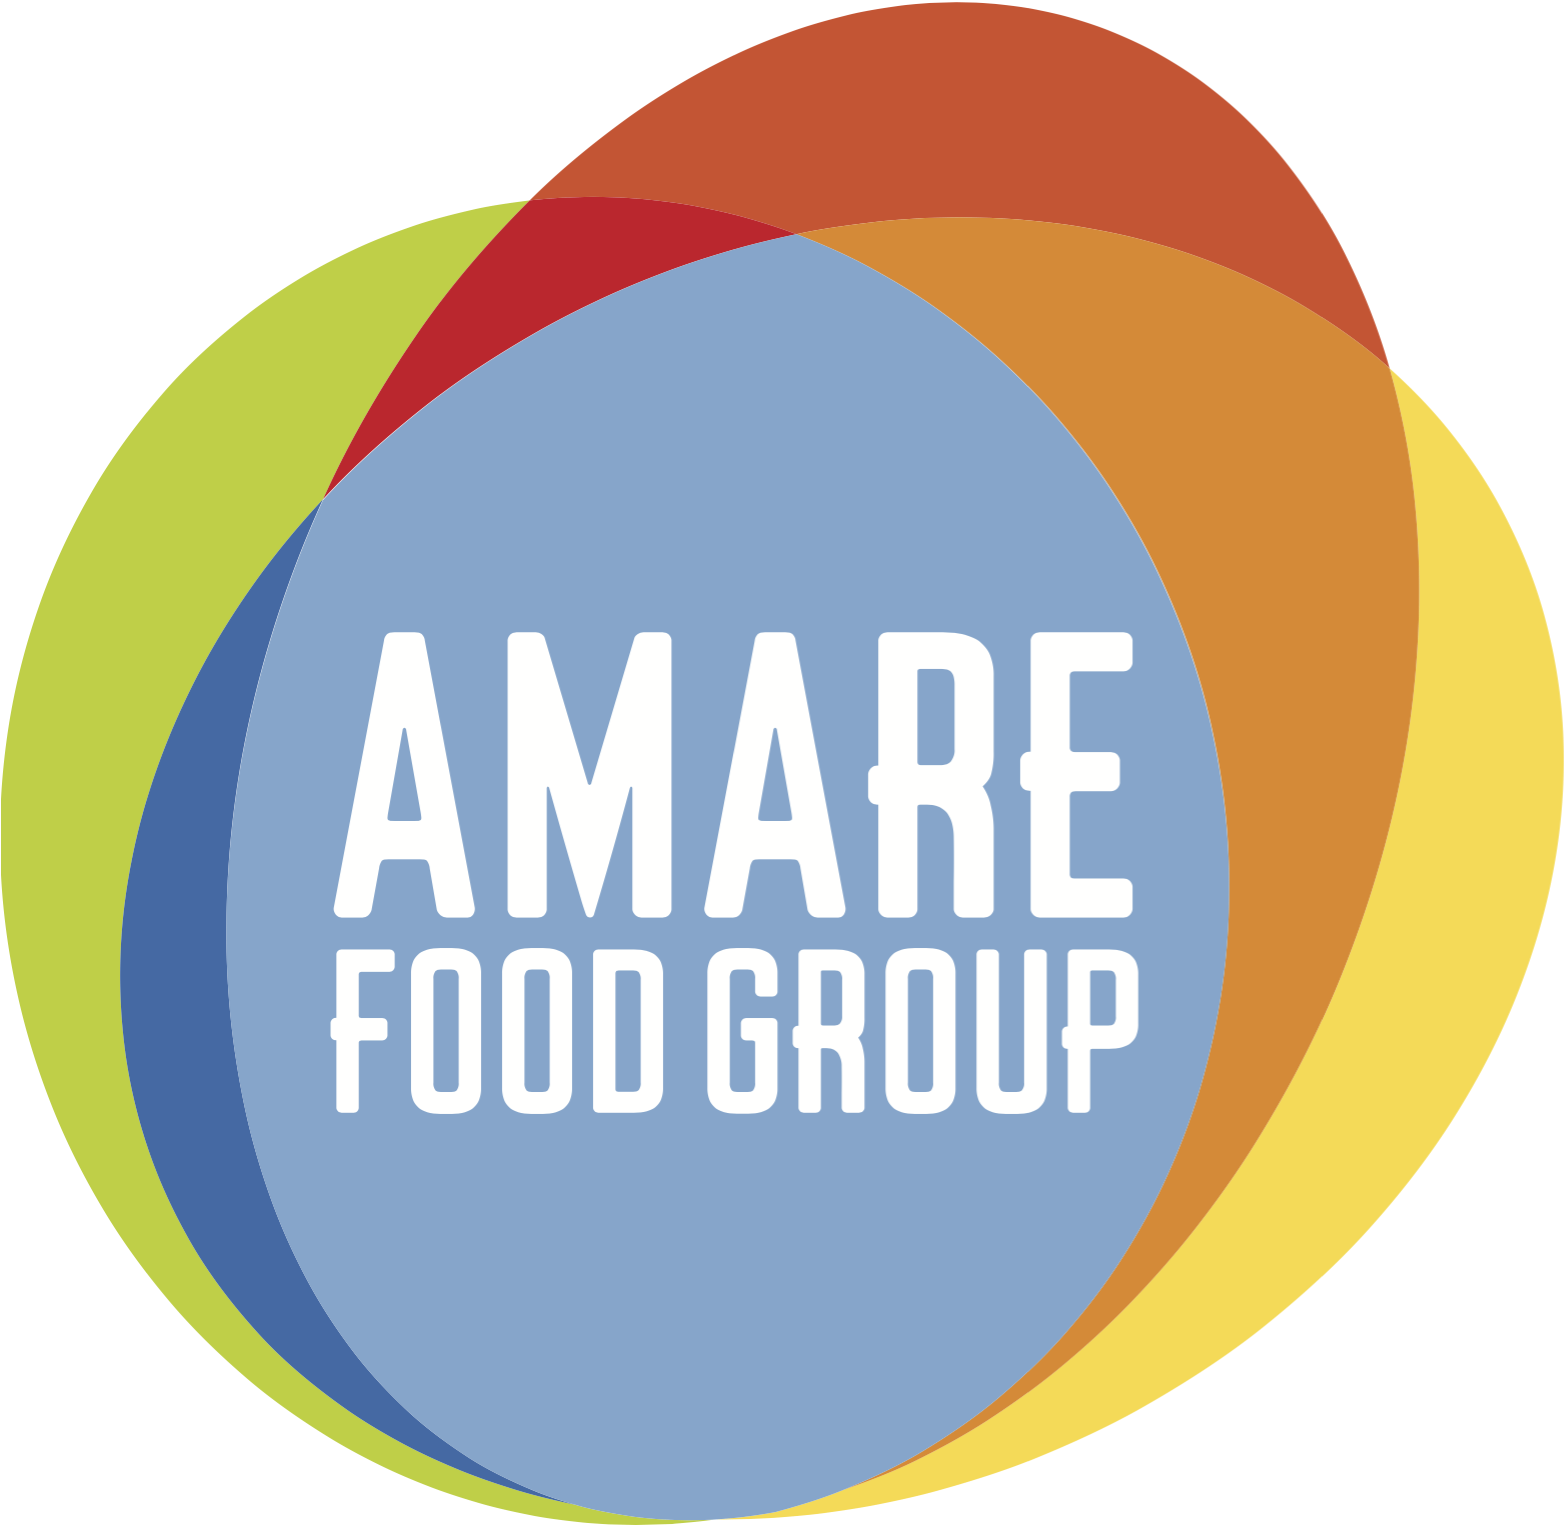 Amare Food Group